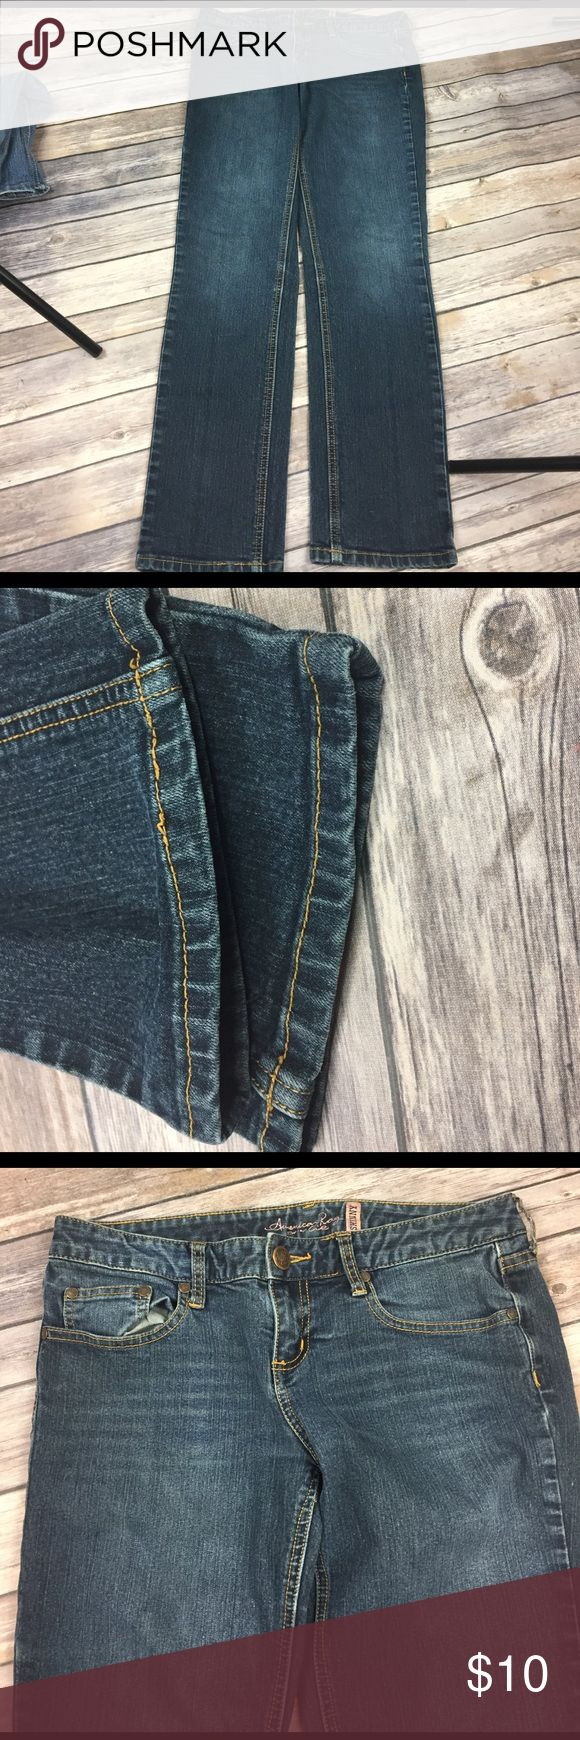 """💚size 7S Skinny American Rag jeans 29"""" inseam.  Gently pre owned.  Normal wash and wear.  🛍 buy 2+ items and get 25% off your purchase automatically!! 🛍 American Rag Jeans Skinny"""